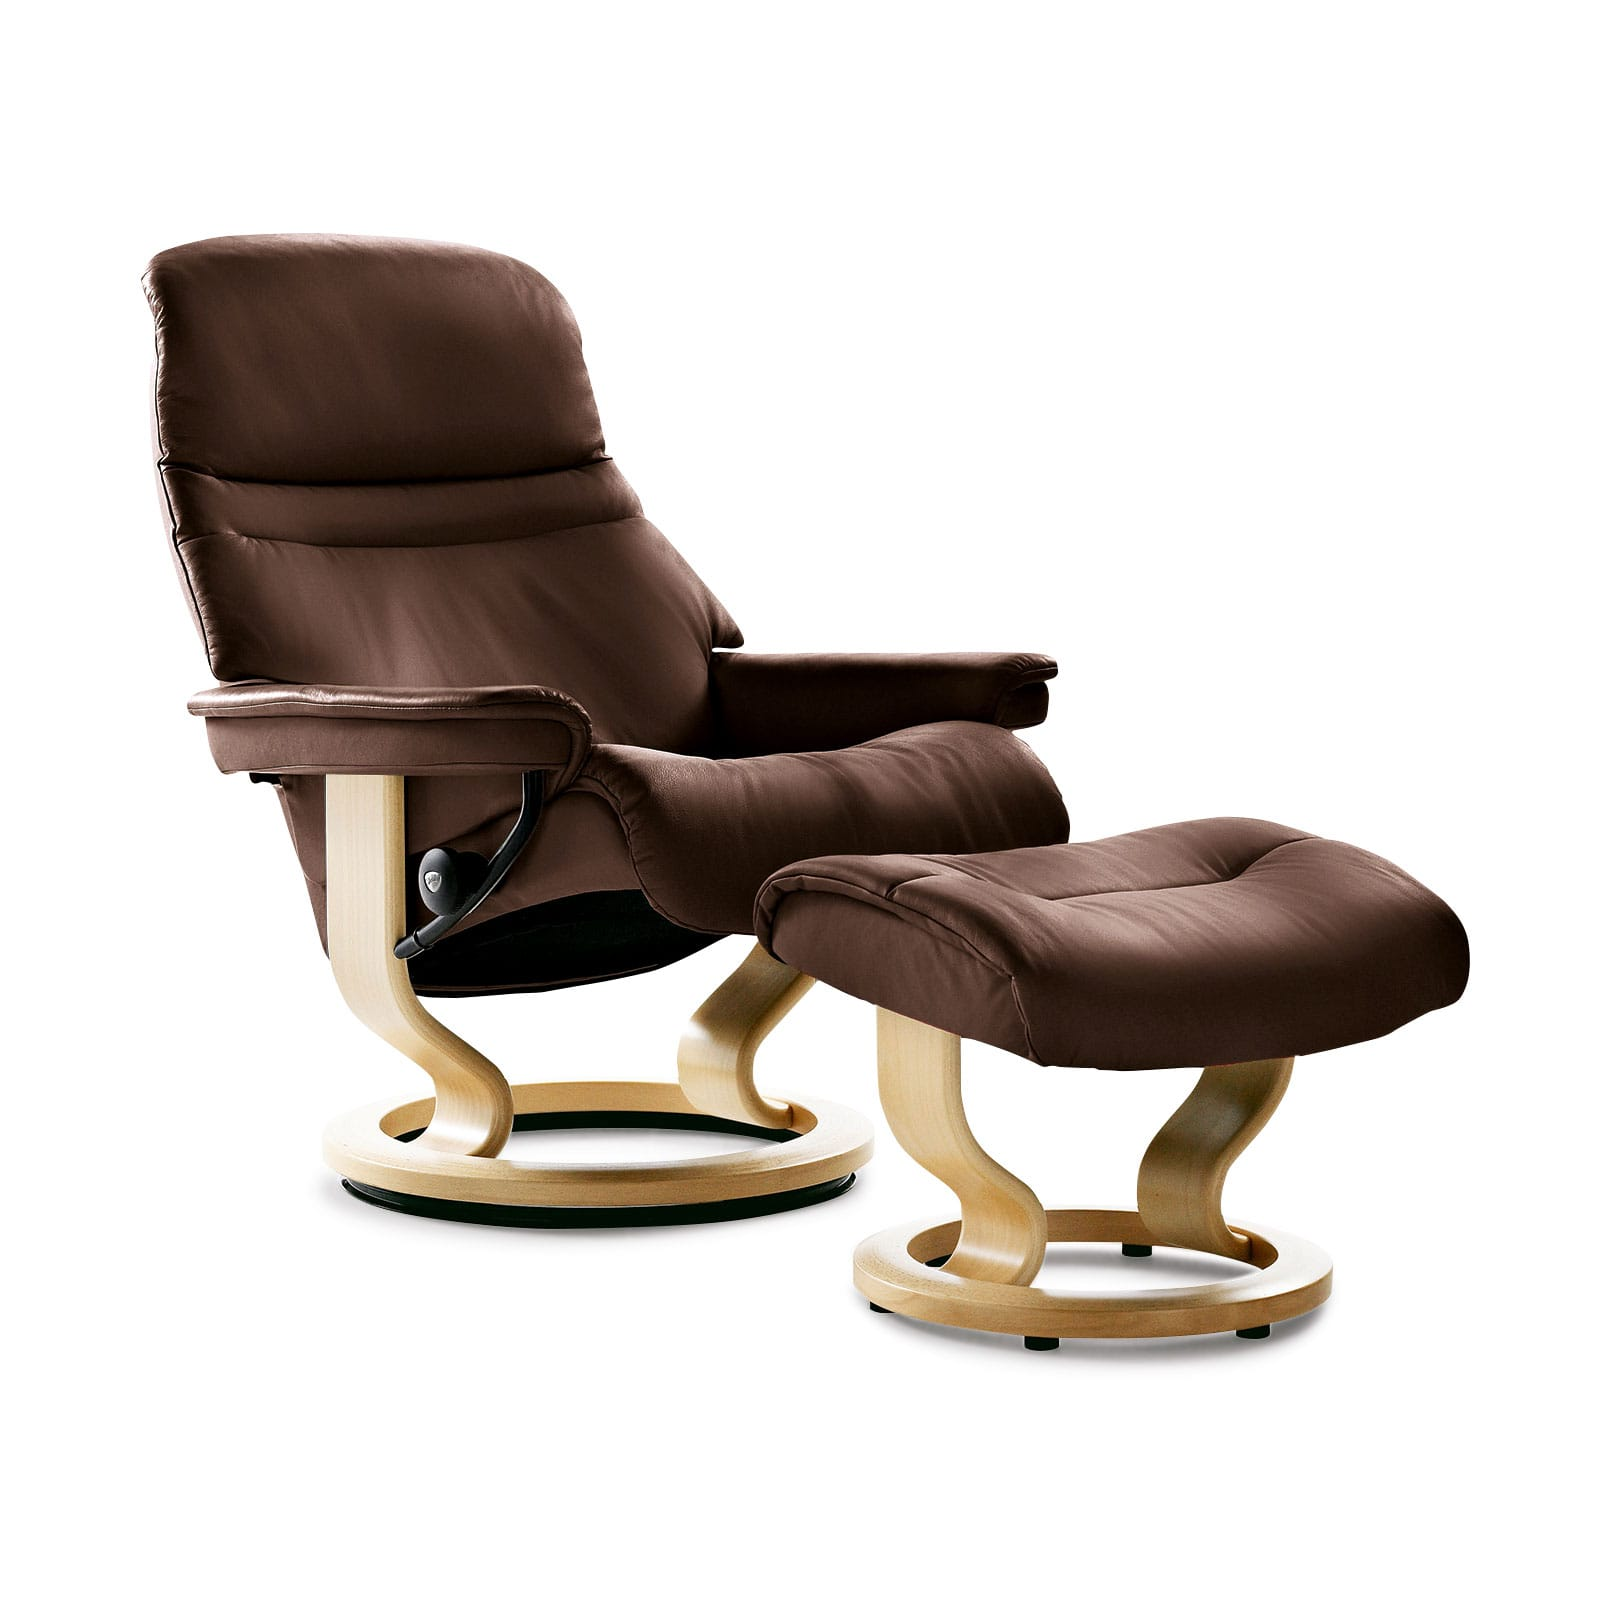 Stressless Sessel Höffner Stressless Sessel Sunrise M Batick Brown Mit Hocker